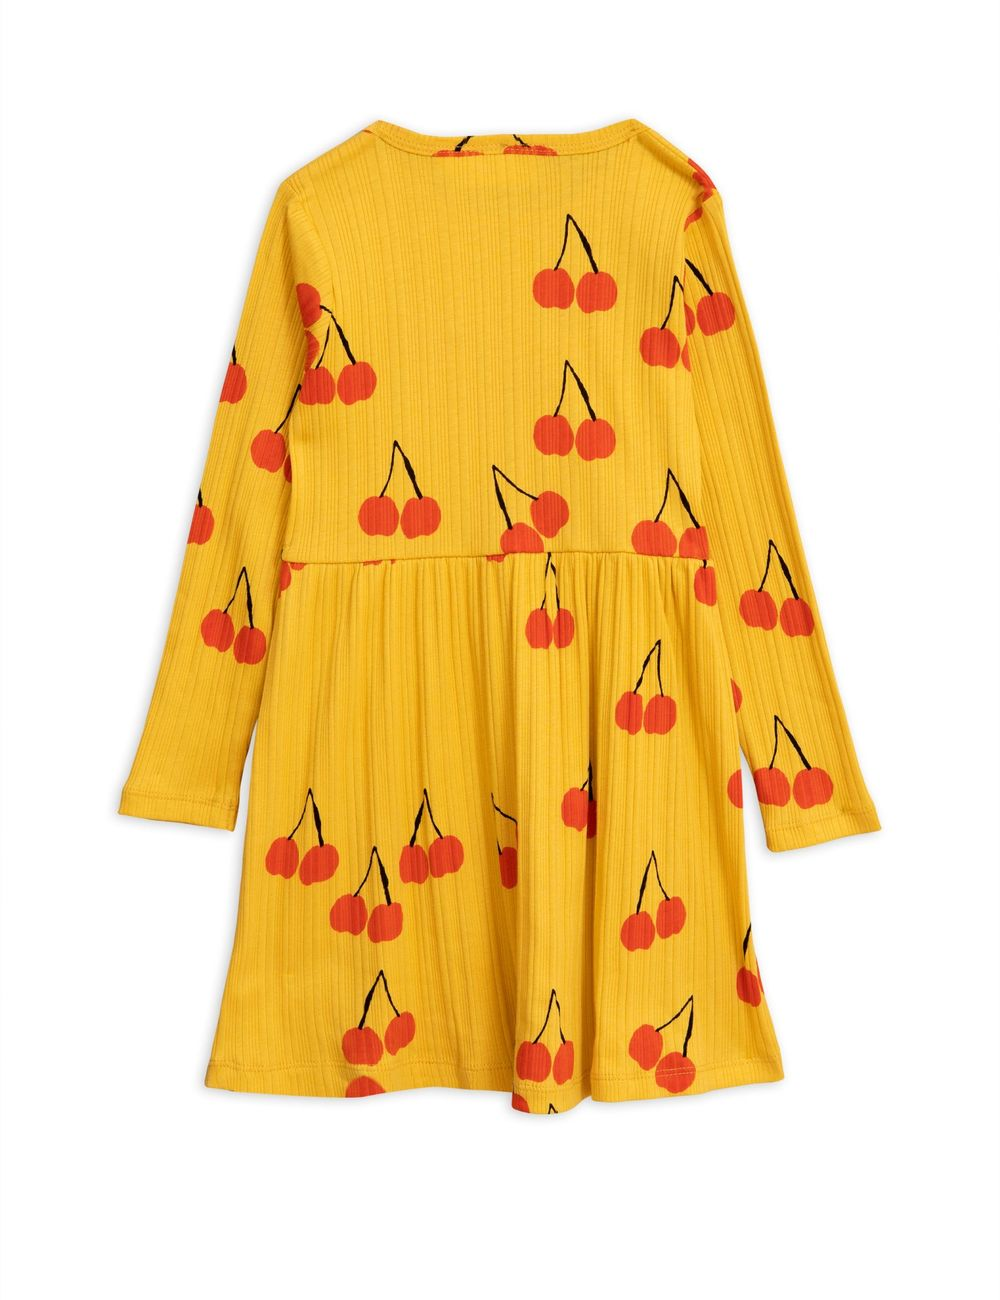 MINI RODINI CHERRY LS DRESS, YELLOW